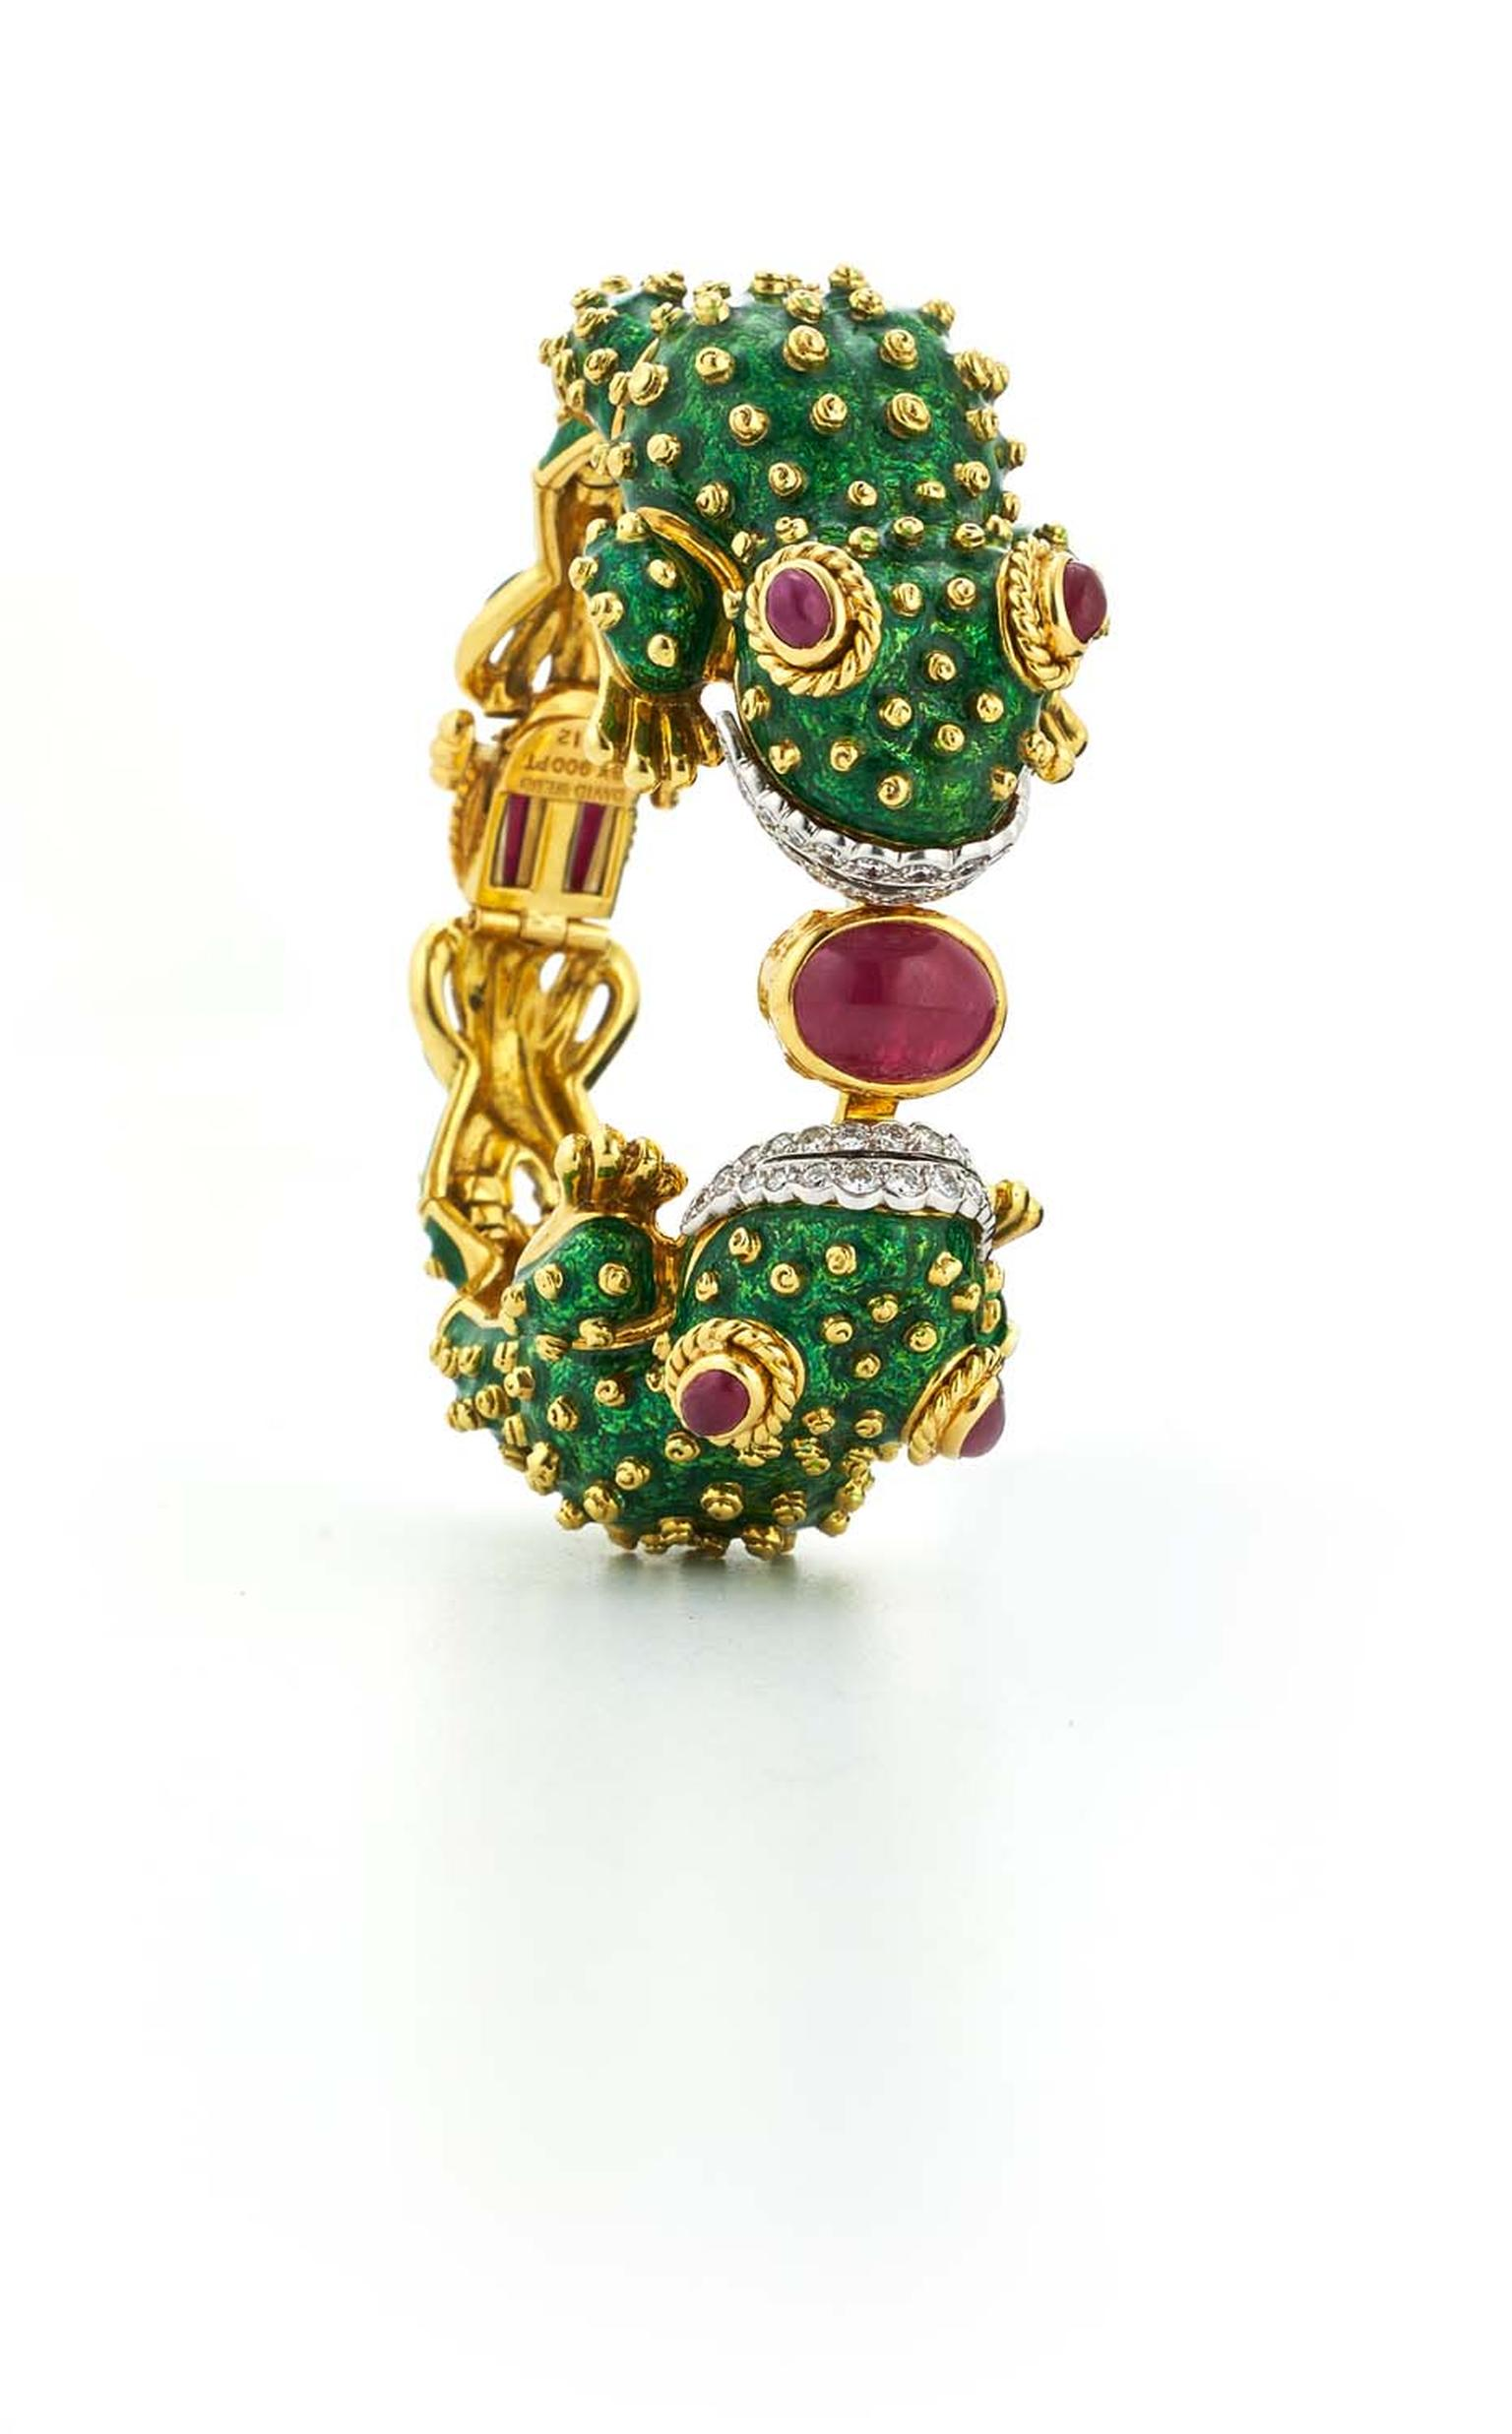 David Webb gold Frog bangle with green enamelling, rubies and diamonds.